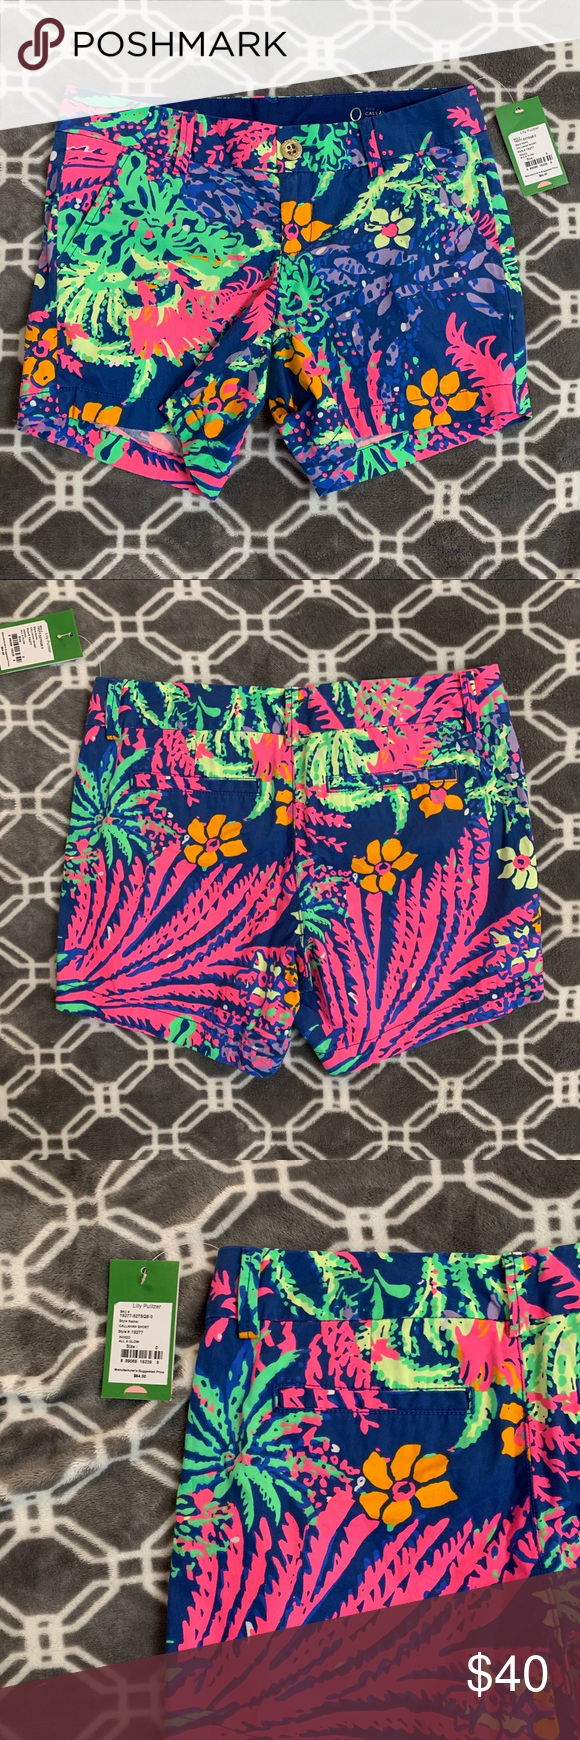 "Pulitzer Callahan Shorts, All a Glow, NWT New with tags Lilly Pulitzer Callahan shorts in ""All a Glow"" print.  Vibrant blue, pink, orange and green hues.  Beautiful shorts that match with so many different tops.  In general, Lilly Pulitzer shorts run a bit big so these fit more like a size 2. Lilly Pulitzer Shorts"